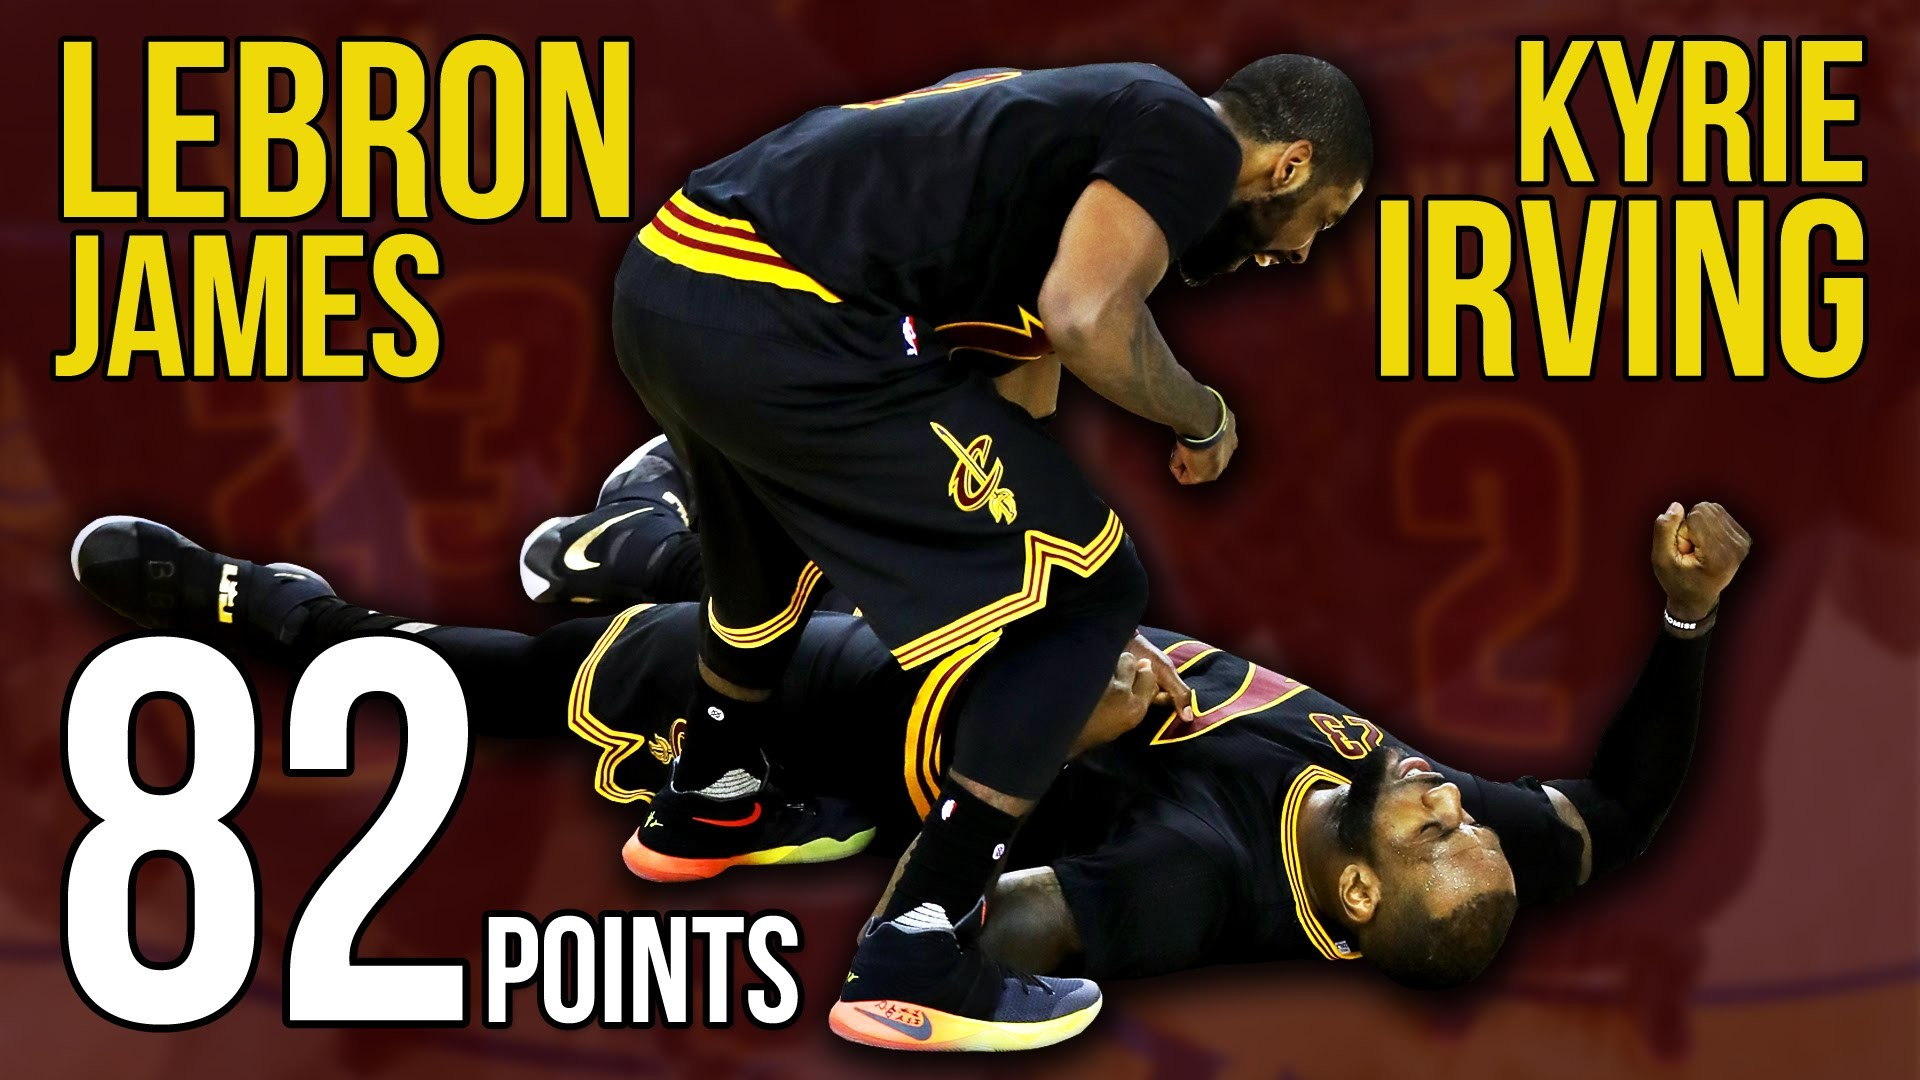 1920x1080 82 Points: Watch Kyrie Irving and Lebron James Make History